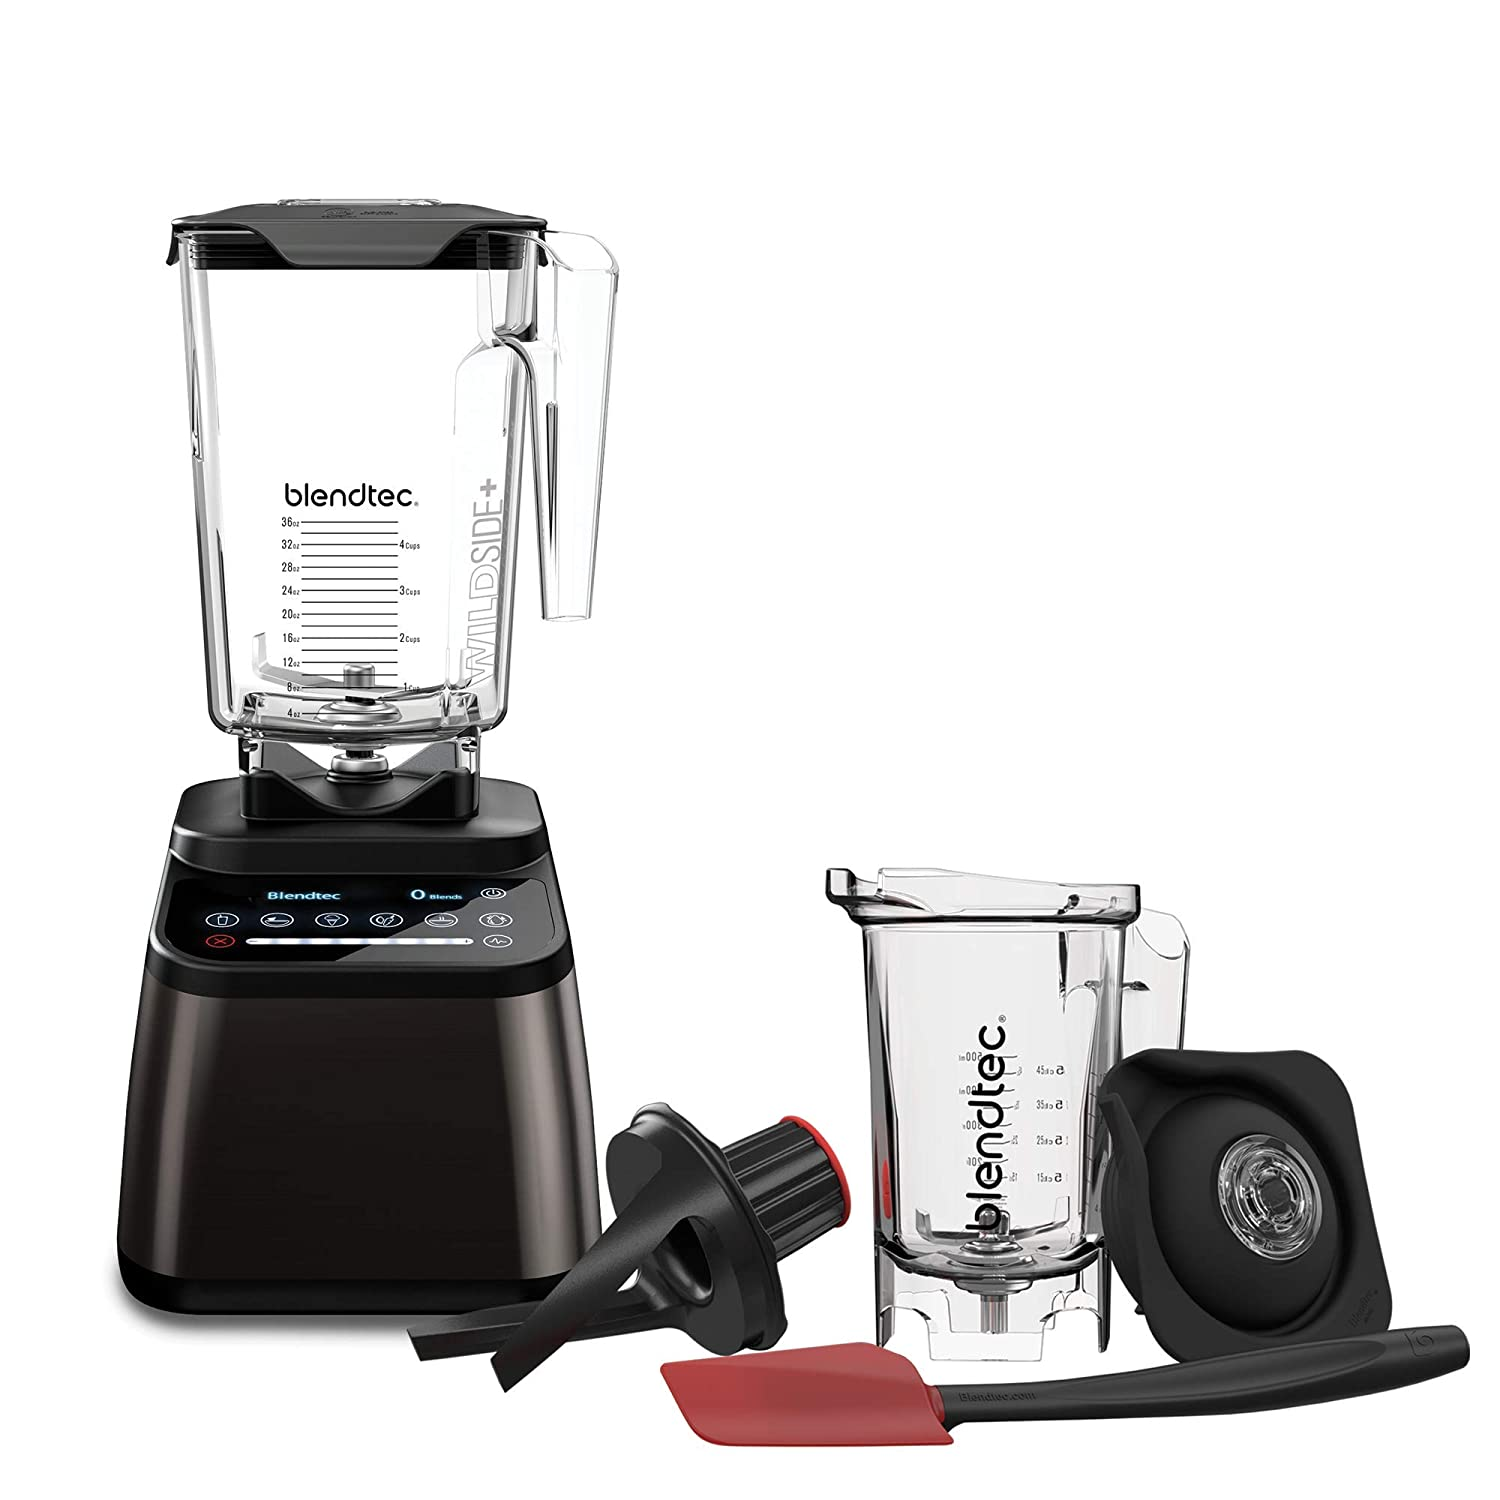 Blendtec Designer 725 Blender - WildSide+ Jar (90 oz)and Twister Jar (37 oz) BUNDLE - Professional-Grade Power - Self-Cleaning - 6 Pre-Programmed Cycles - 100-Speeds - Gunmetal/Black